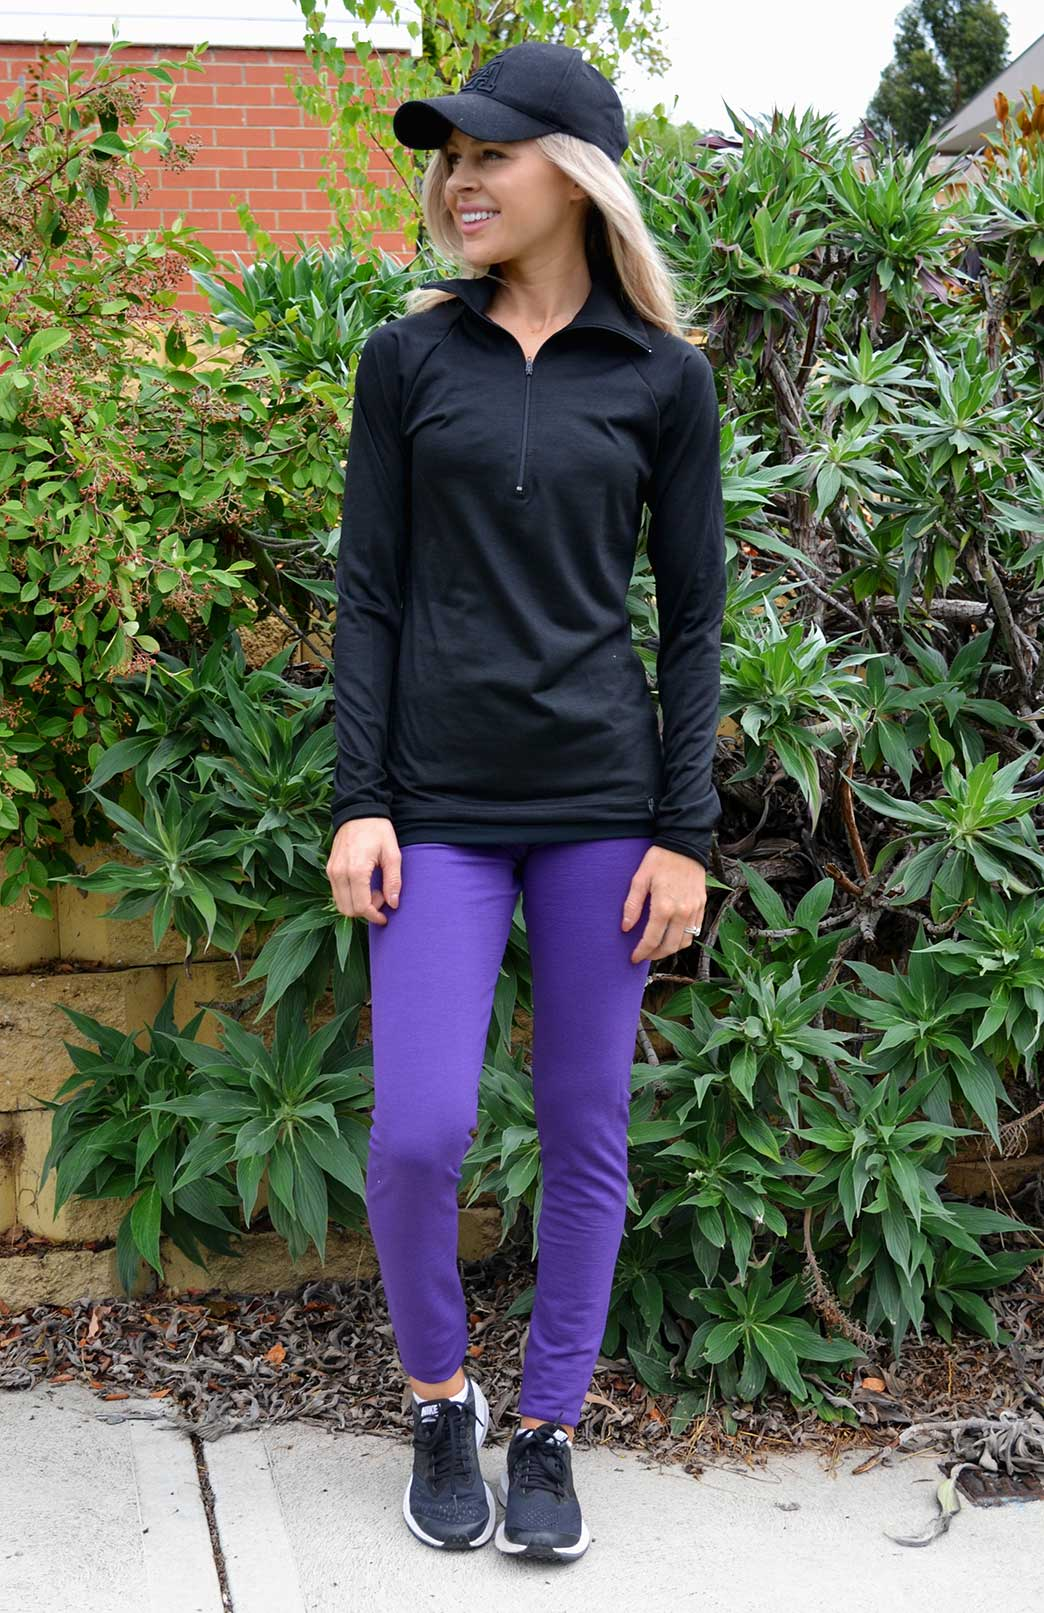 Leggings - 240g - Women's Violet Purple Thermal Leggings - Smitten Merino Tasmania Australia